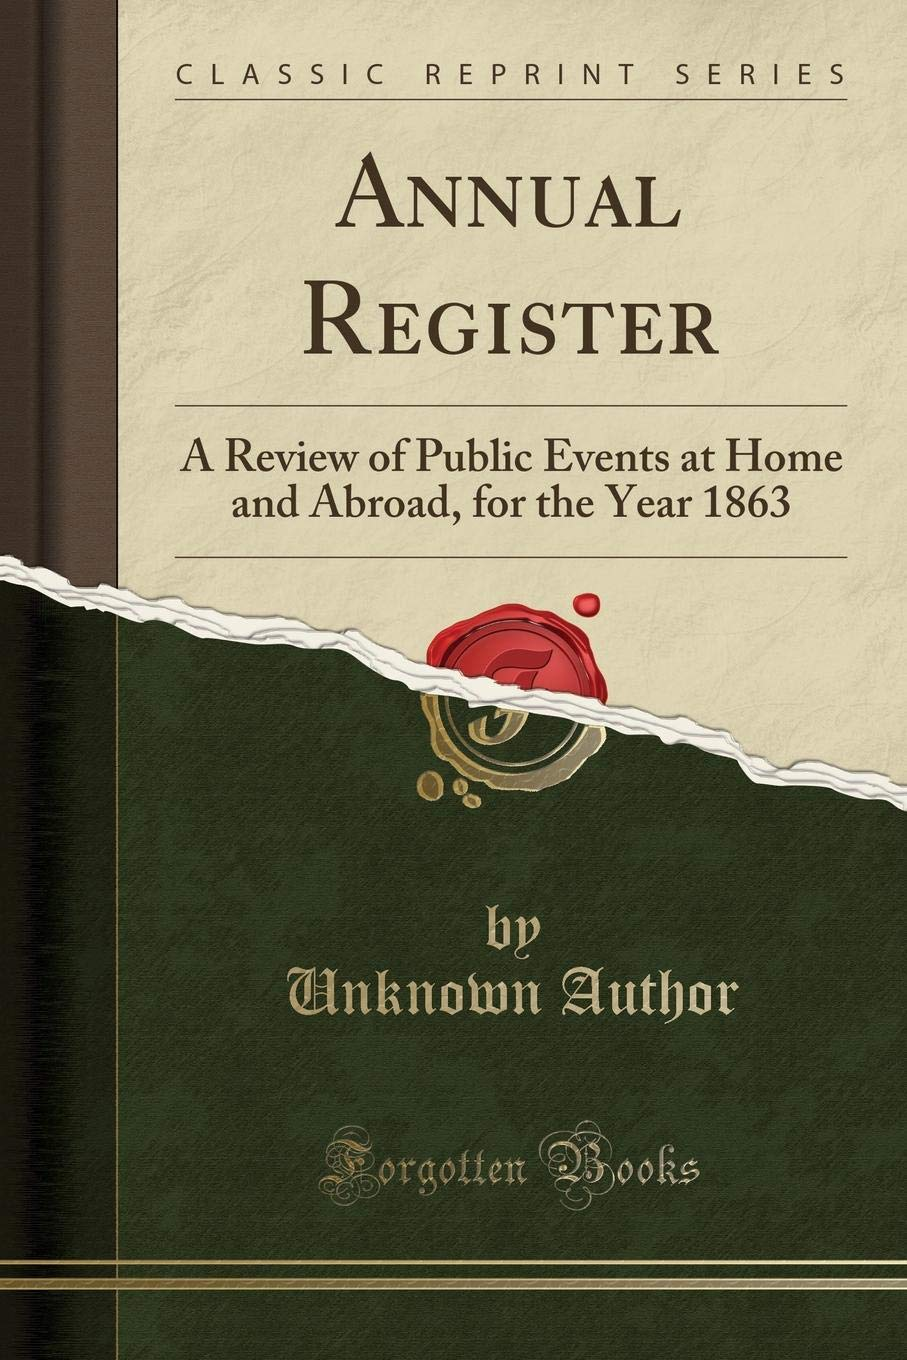 Annual Register: A Review of Public Events at Home and Abroad, for the Year 1863 (Classic Reprint) pdf